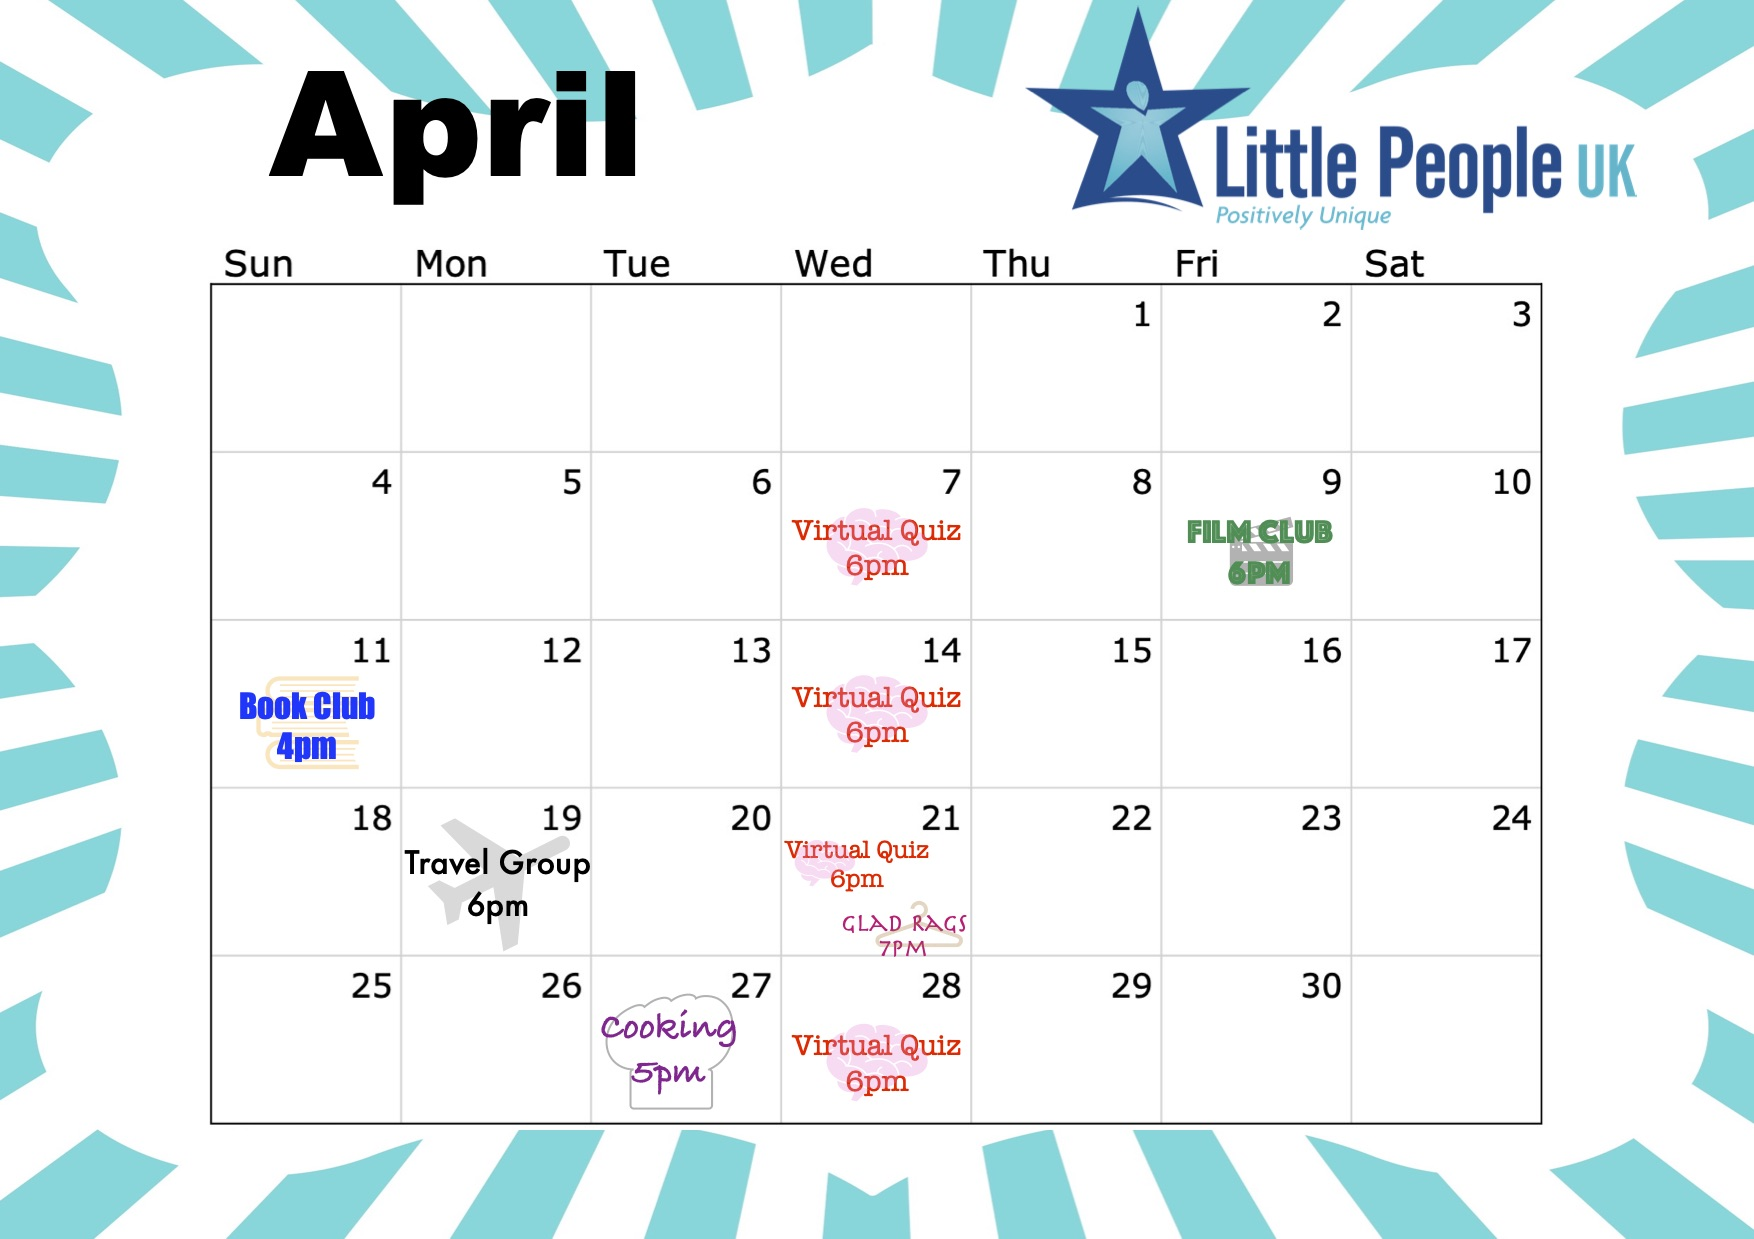 LPUK April online events CALENDAR